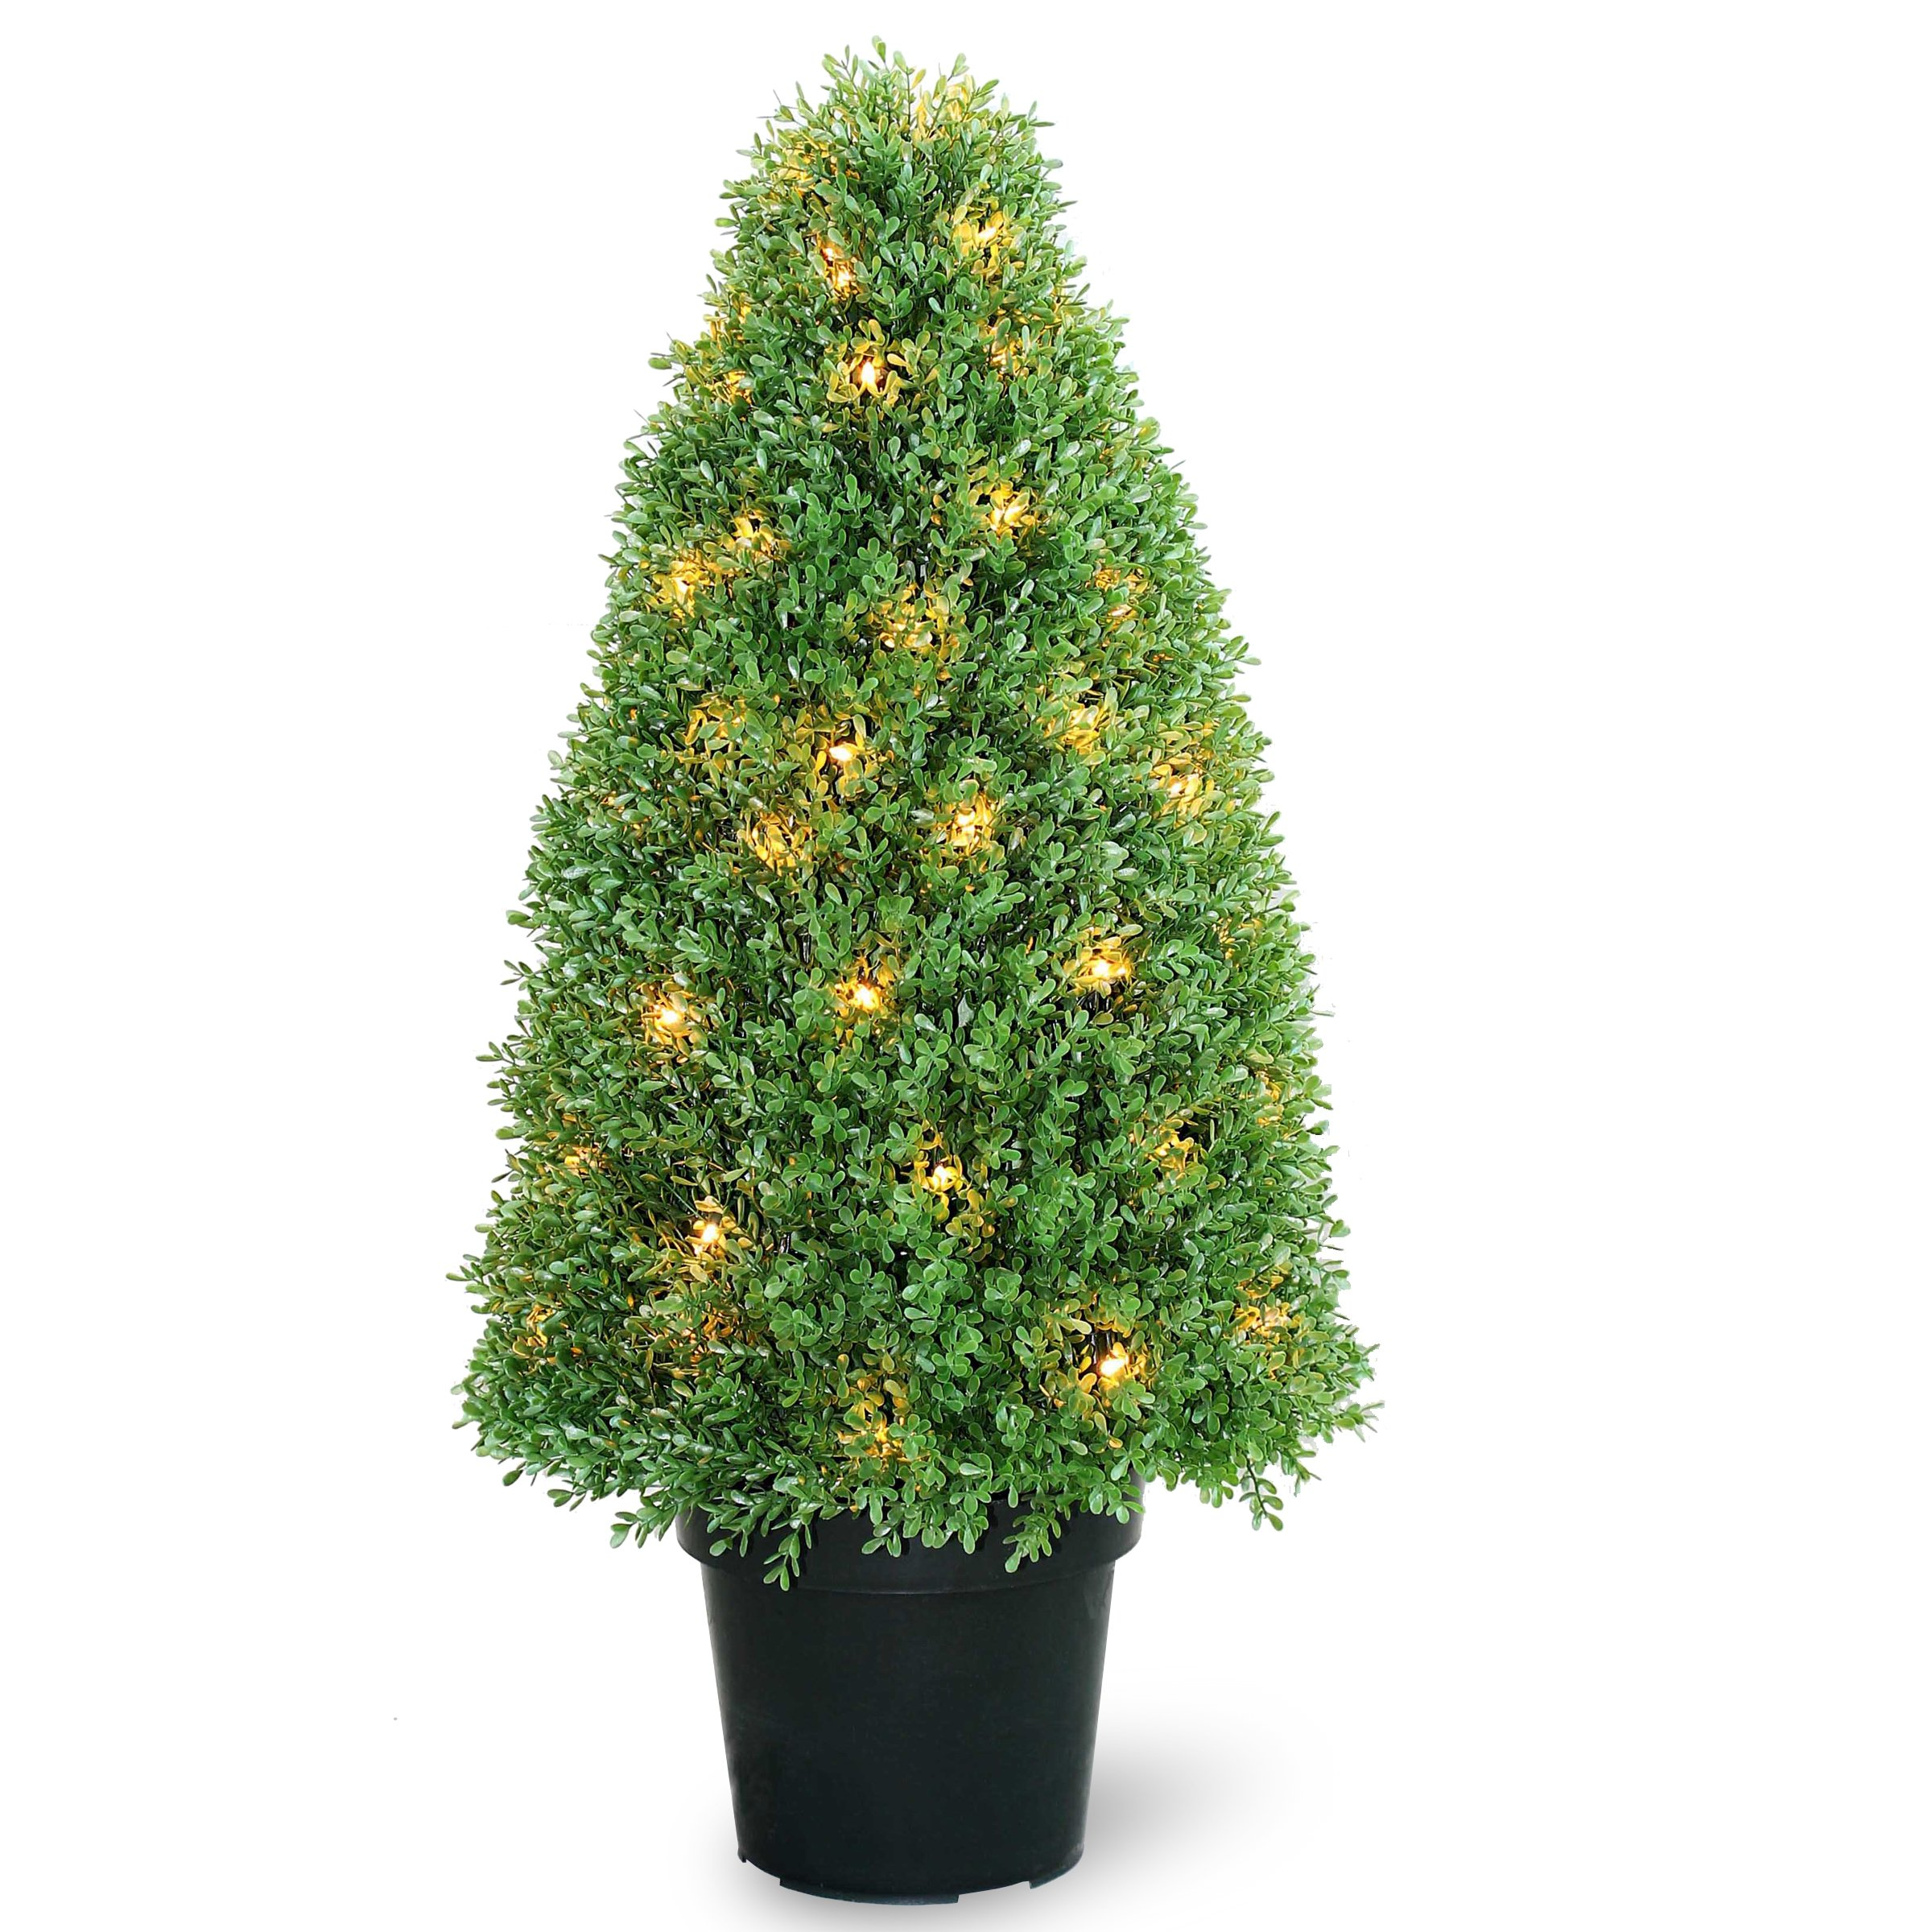 National Tree 36 Inch Boxwood Tree with 70 Clear Lights in Dark Green Growers Pot (LBX4-300-36)